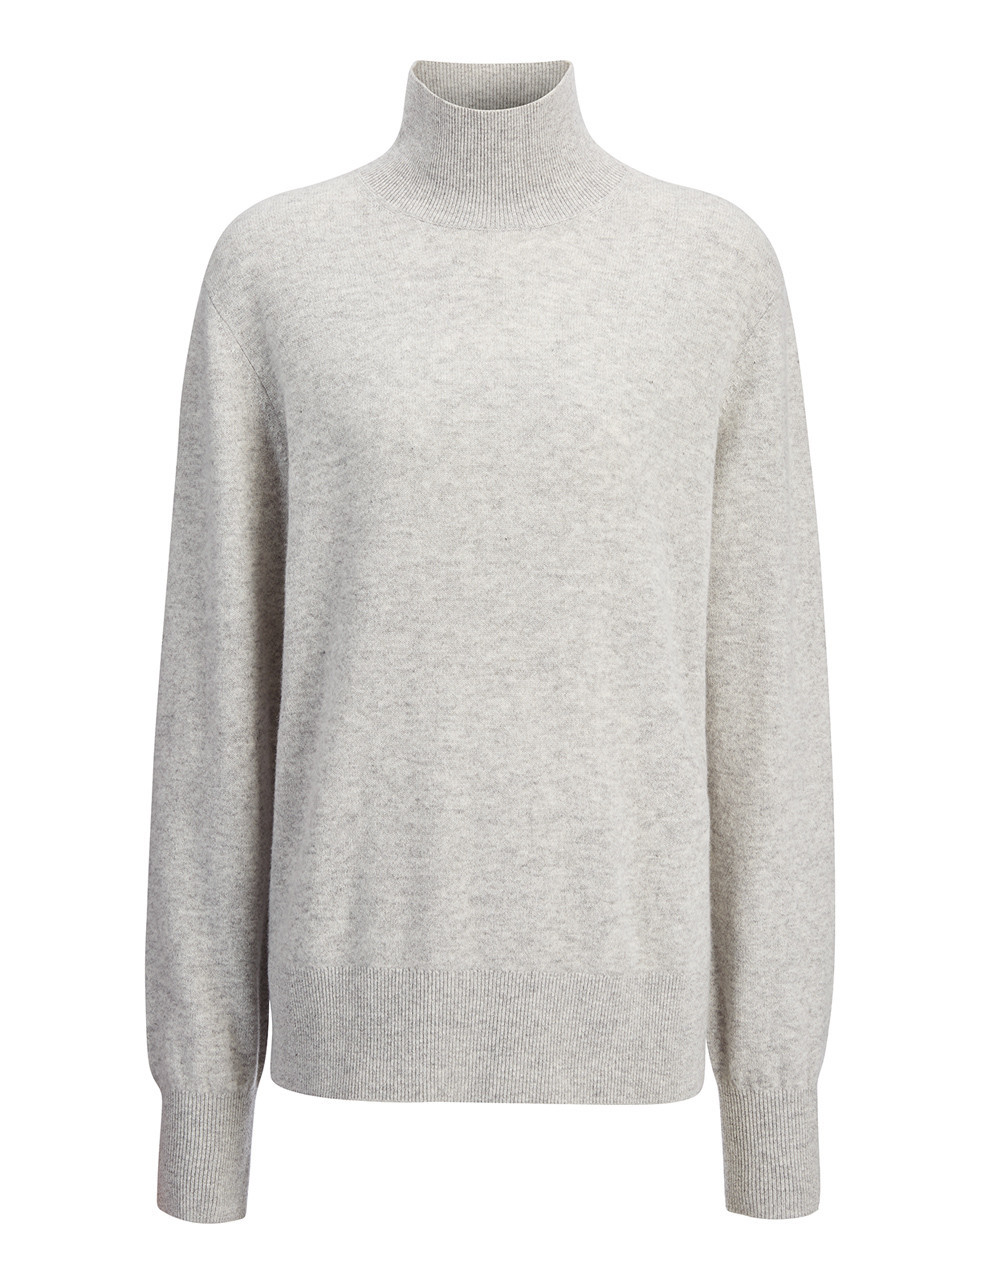 Soft Wool High Neck Top In Marble - pattern: plain; neckline: roll neck; predominant colour: light grey; occasions: casual, work, creative work; length: standard; style: top; fibres: wool - 100%; fit: straight cut; sleeve length: long sleeve; sleeve style: standard; texture group: knits/crochet; pattern type: knitted - fine stitch; season: s/s 2016; wardrobe: basic